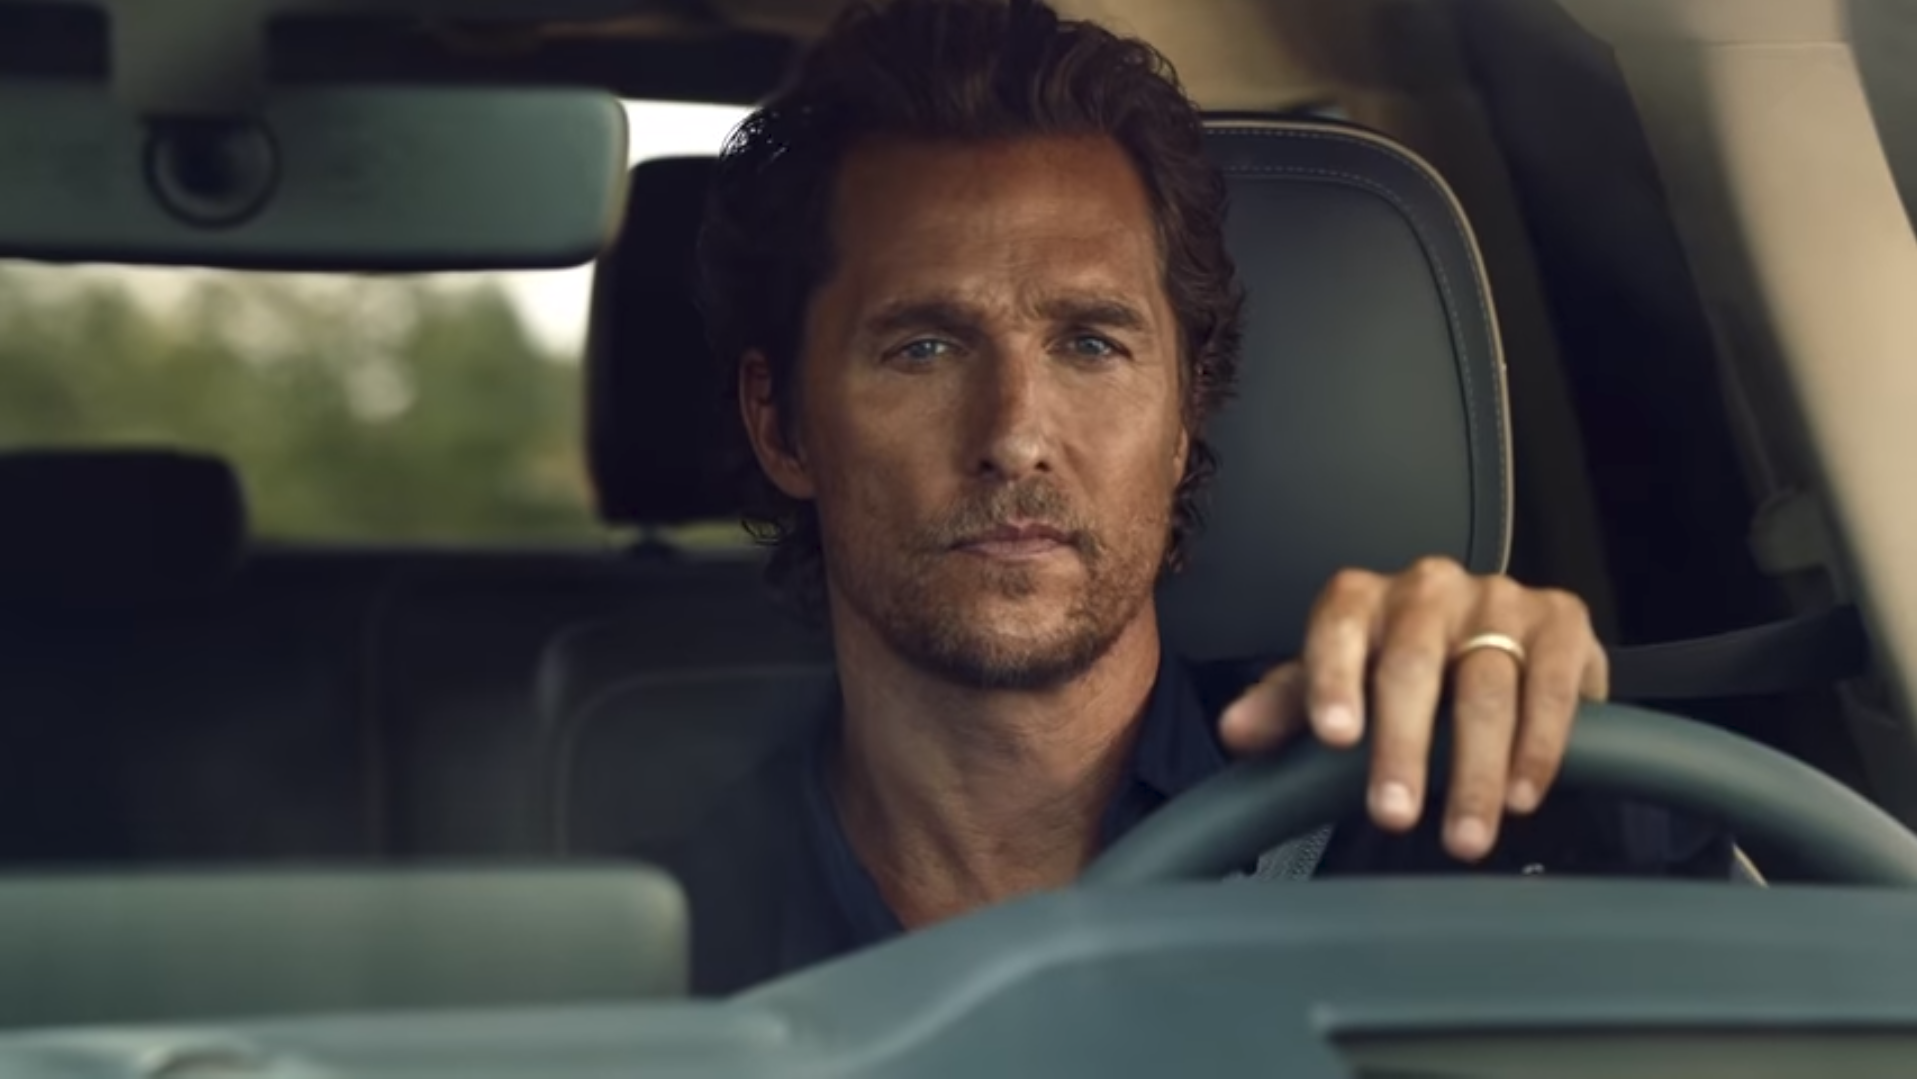 Here's the McConaughey Lincoln Navigator Ad We've All Been Dying to See